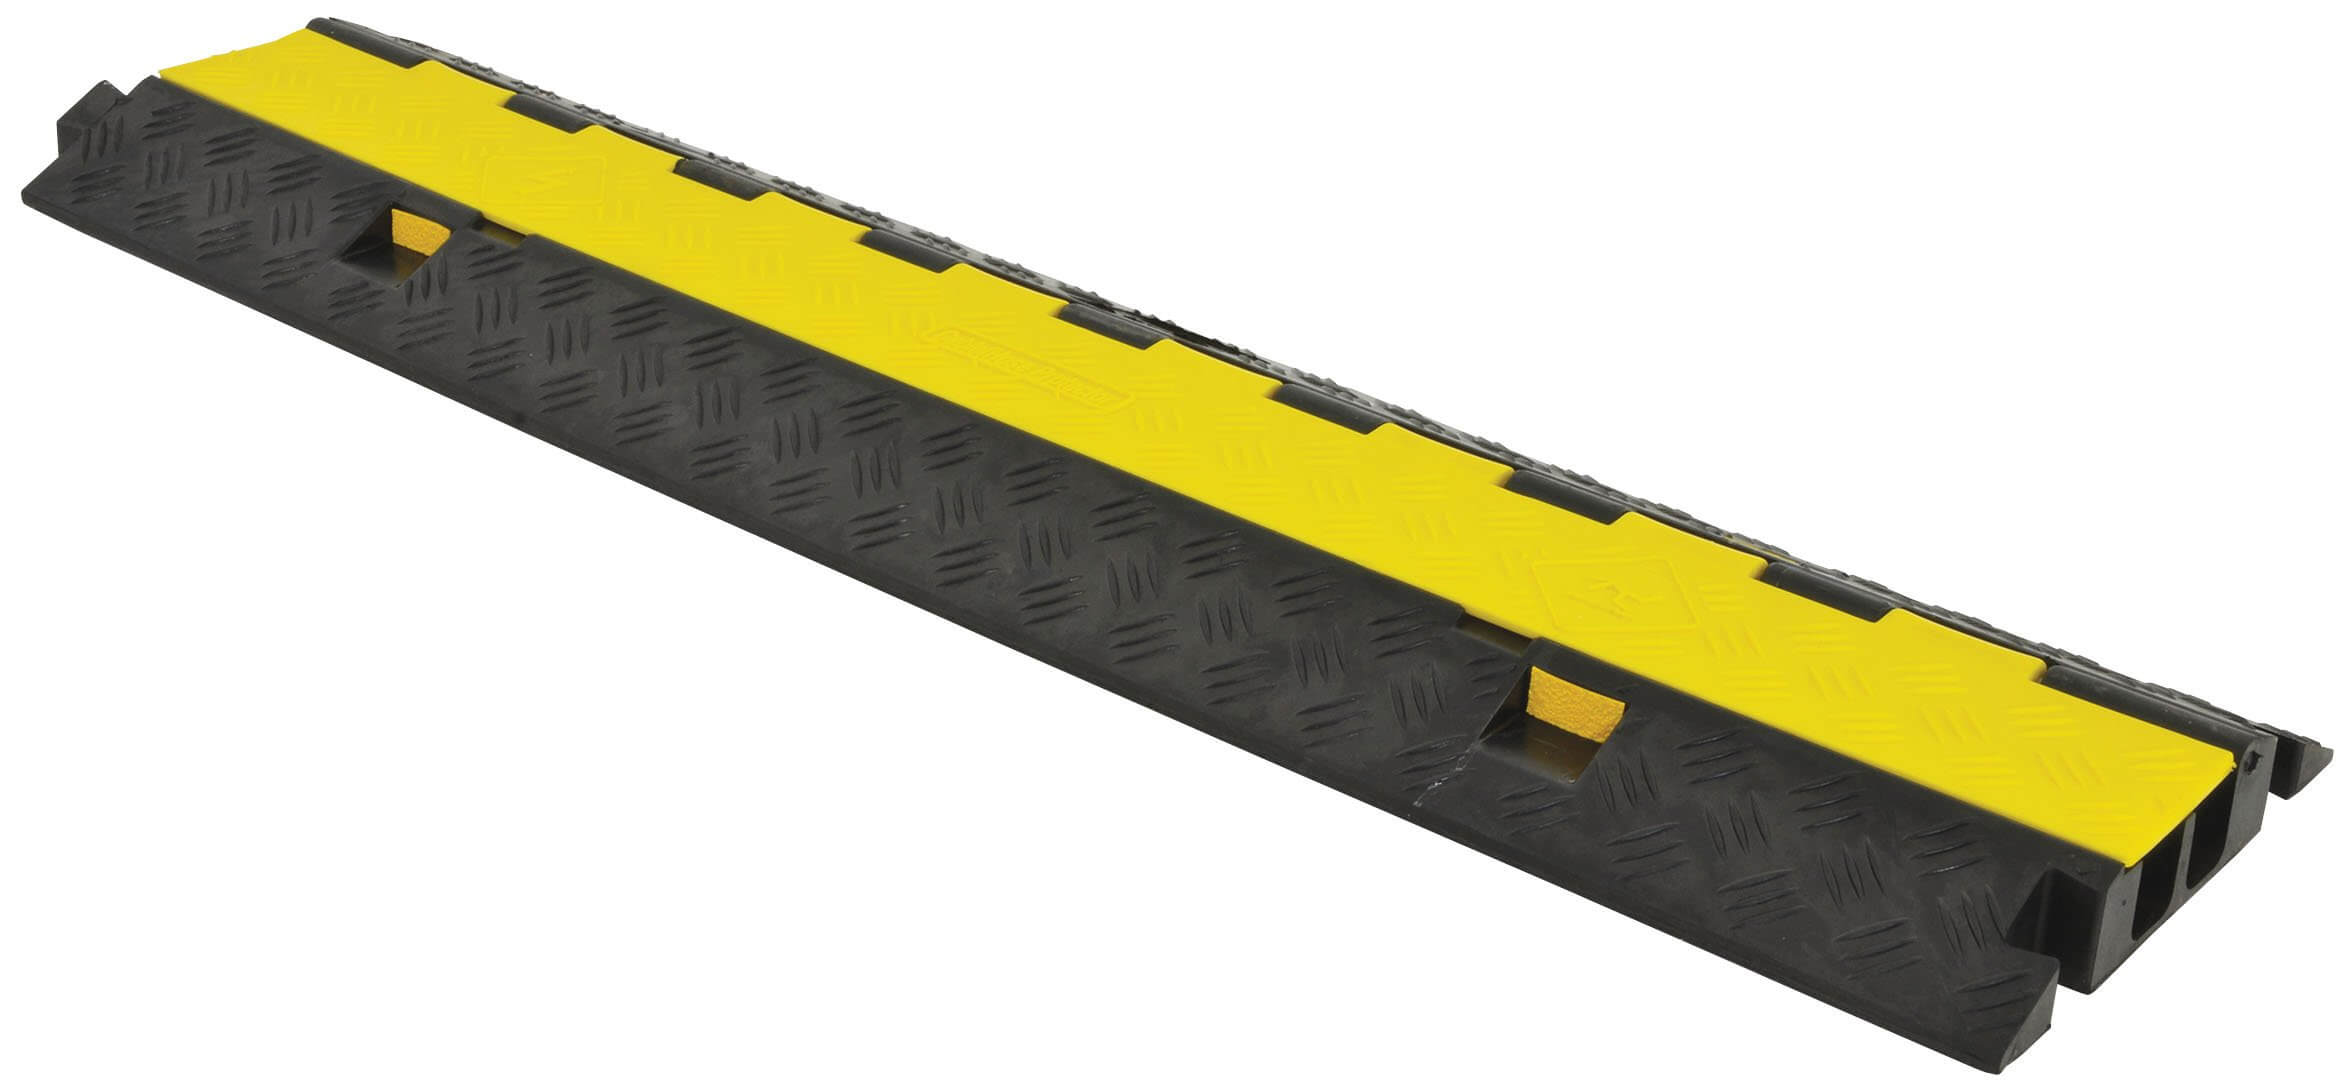 2-Channel Rubber Cable Guard Bridge Protector 8T Load Event Safety Vehicle Ramp